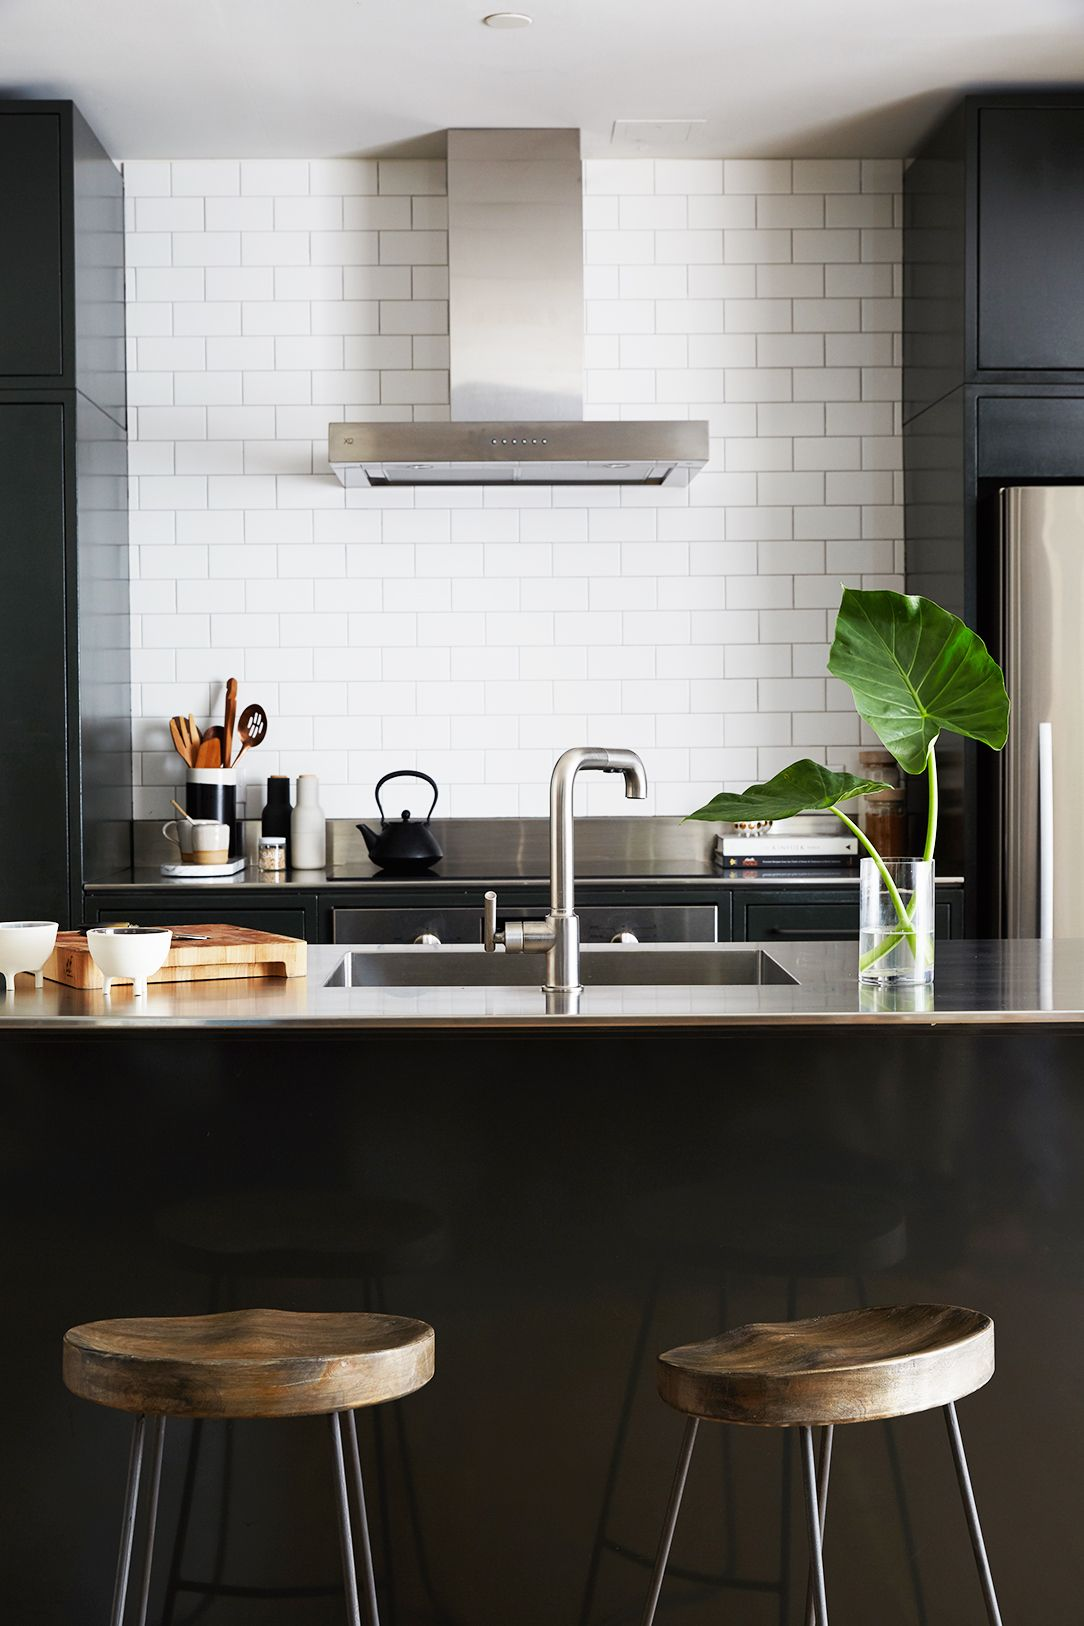 Kitchen Design Brooklyn Prepossessing Tour A Textural Familyfriendly Brooklyn Loft  Urban Loft Lofts Decorating Inspiration